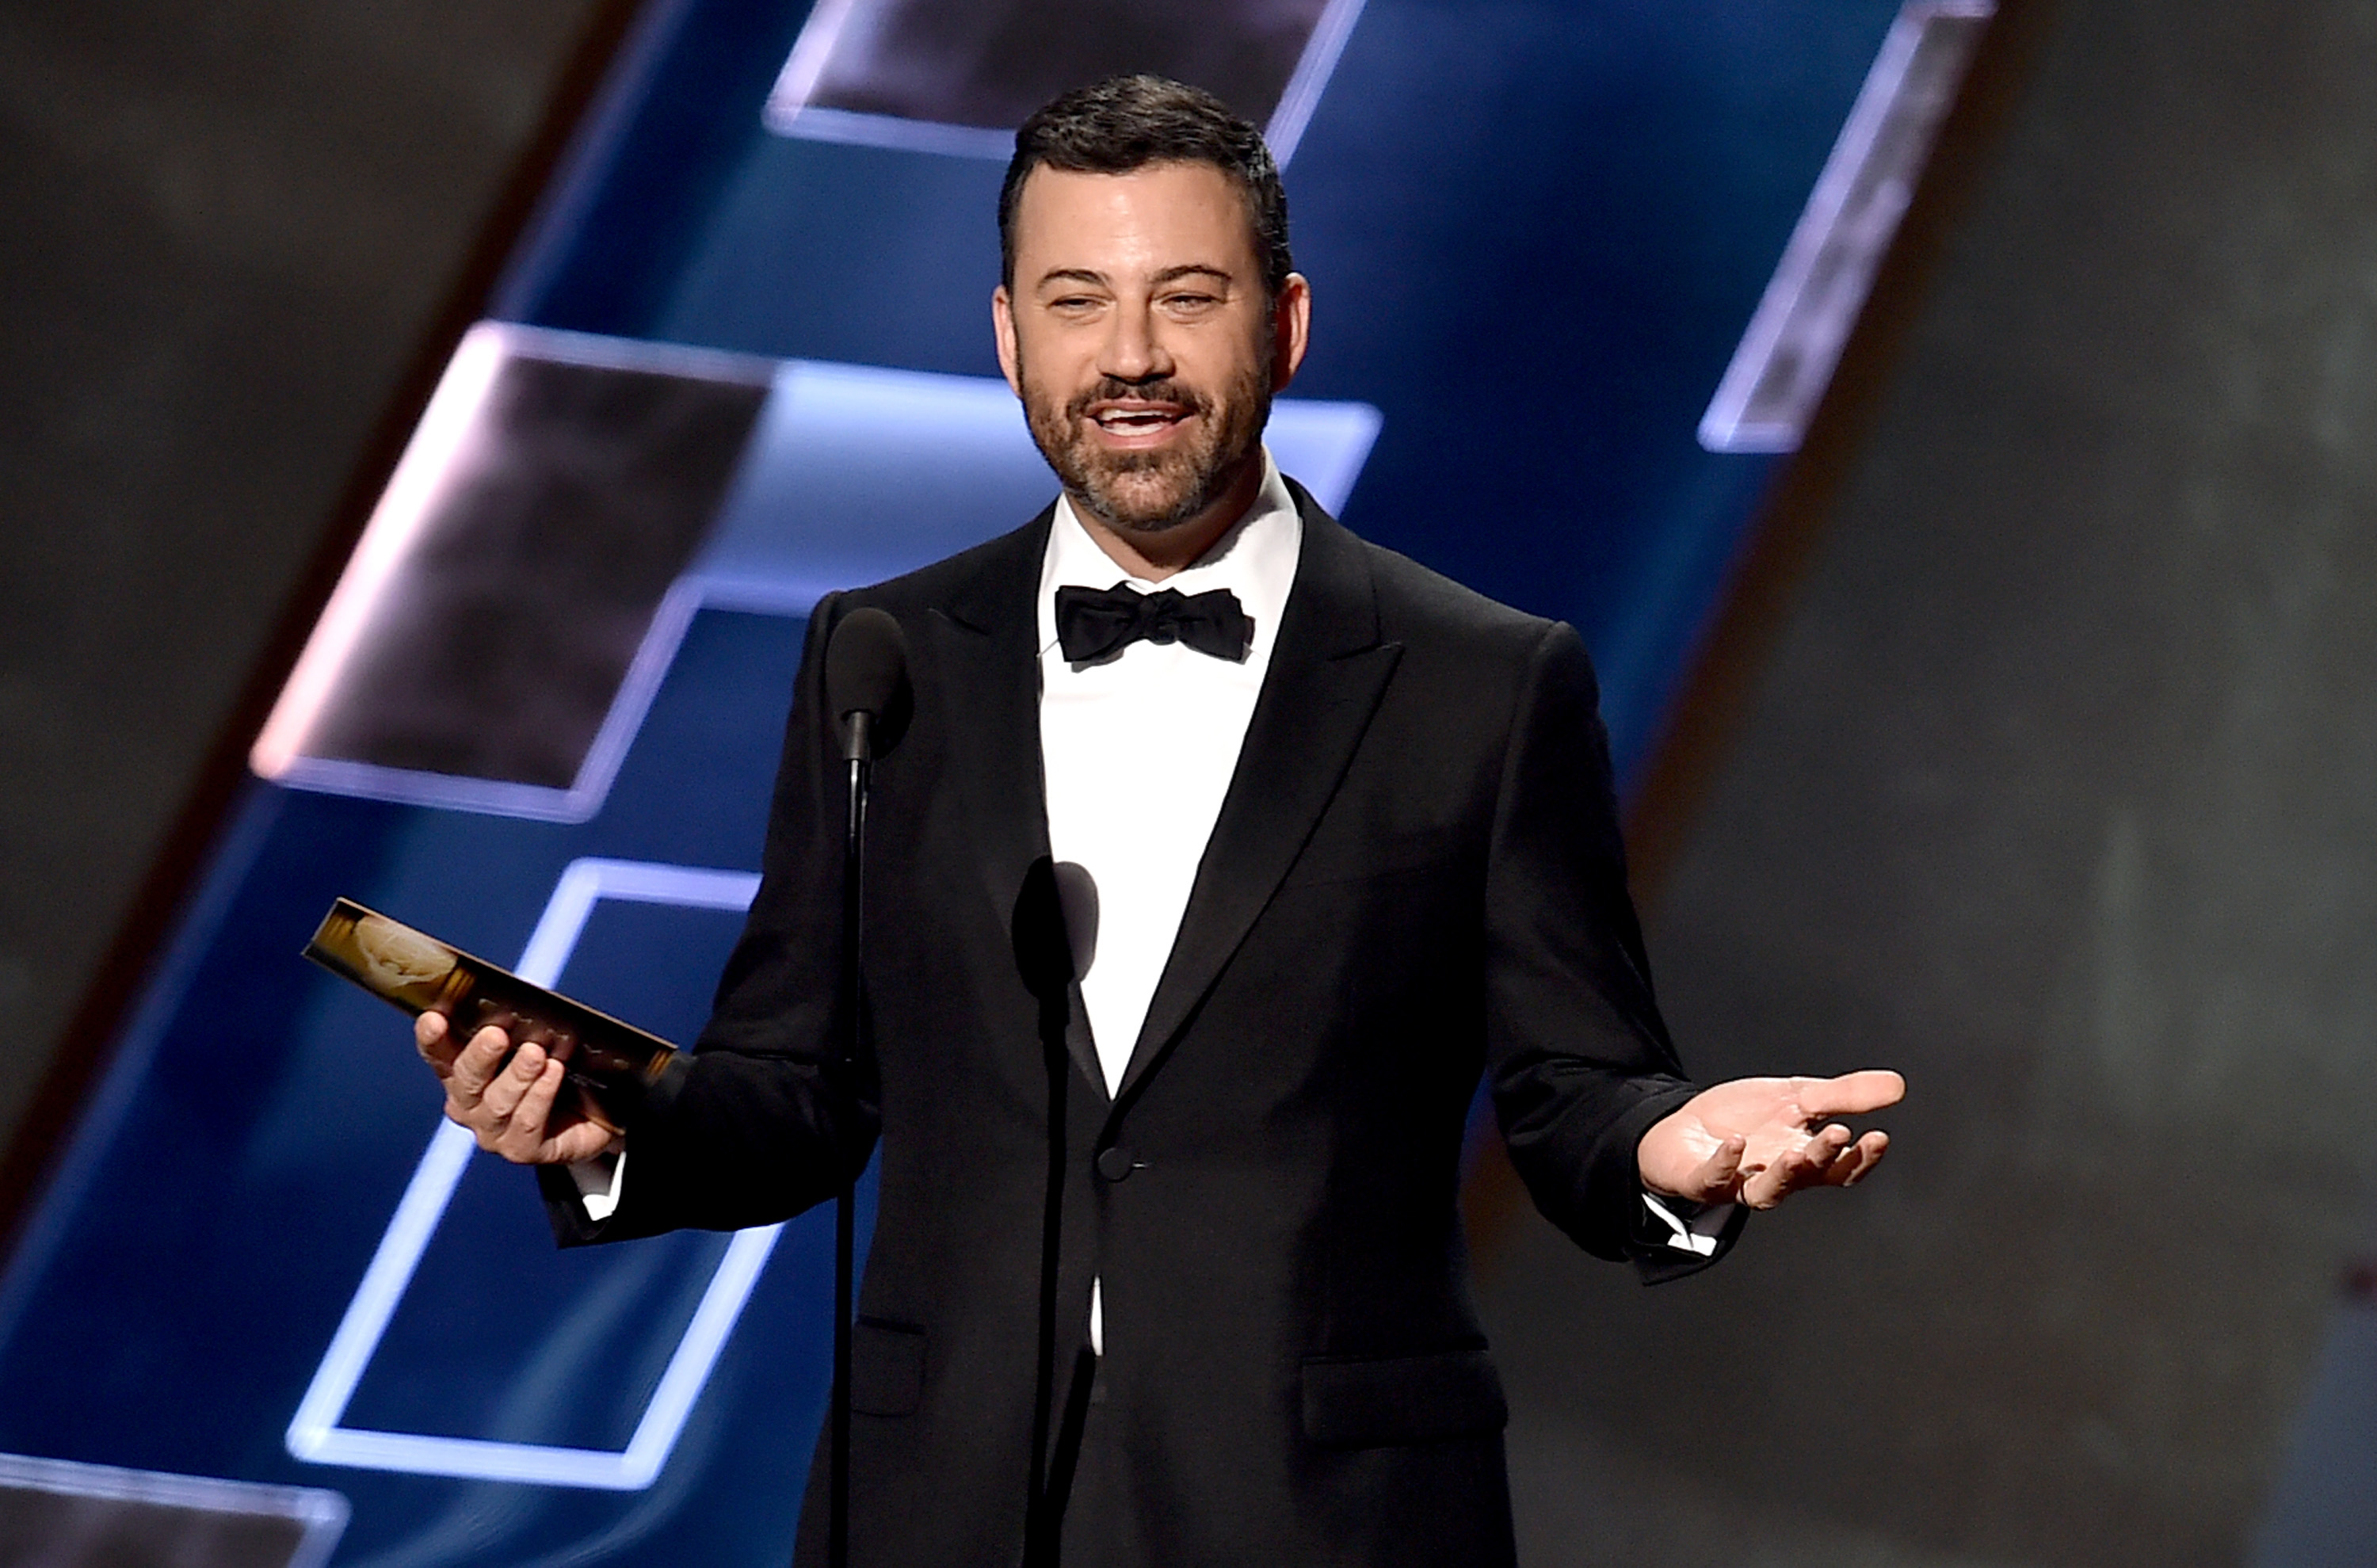 Who is Oscars 2017 host Jimmy Kimmel? The talk show presenter explained for the UK